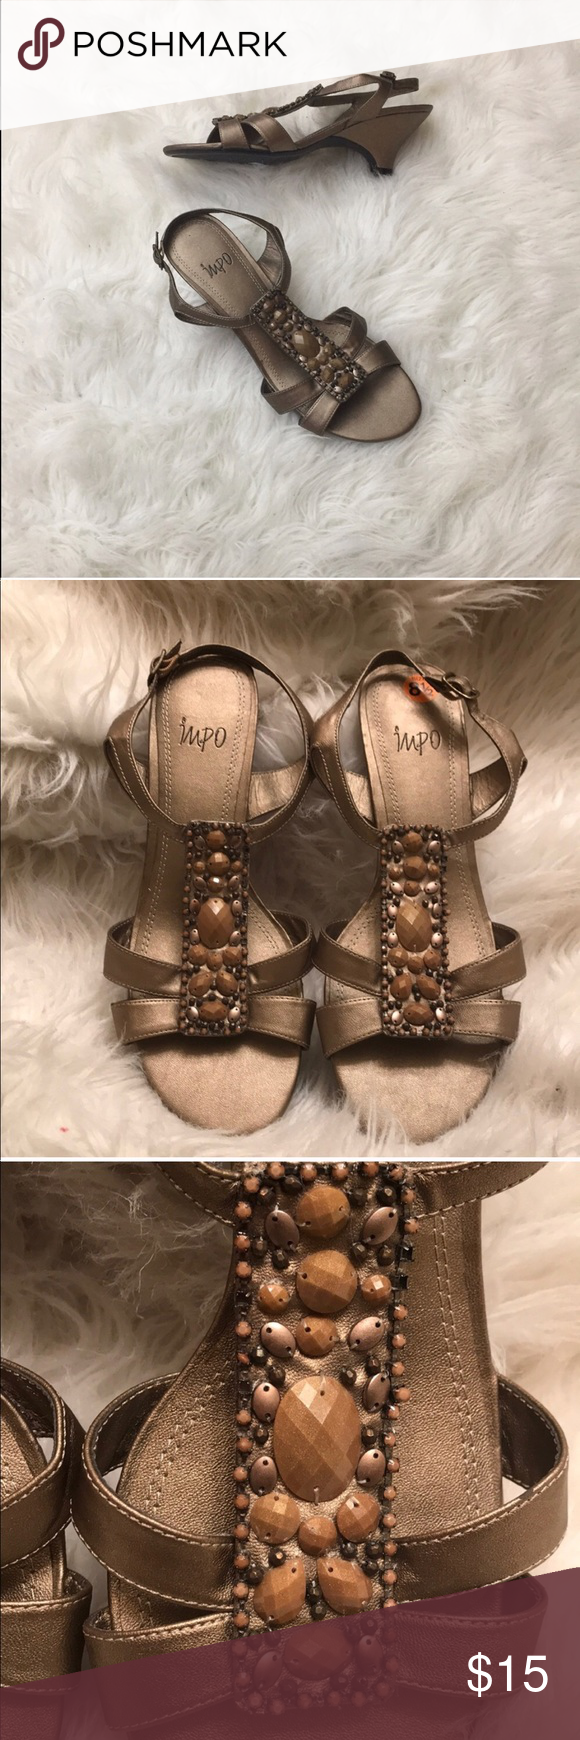 13e28161b Impo 💜 Impo bronze sandal with chestnut color jewels in front. Please see  pics for details. Impo Shoes Sandals